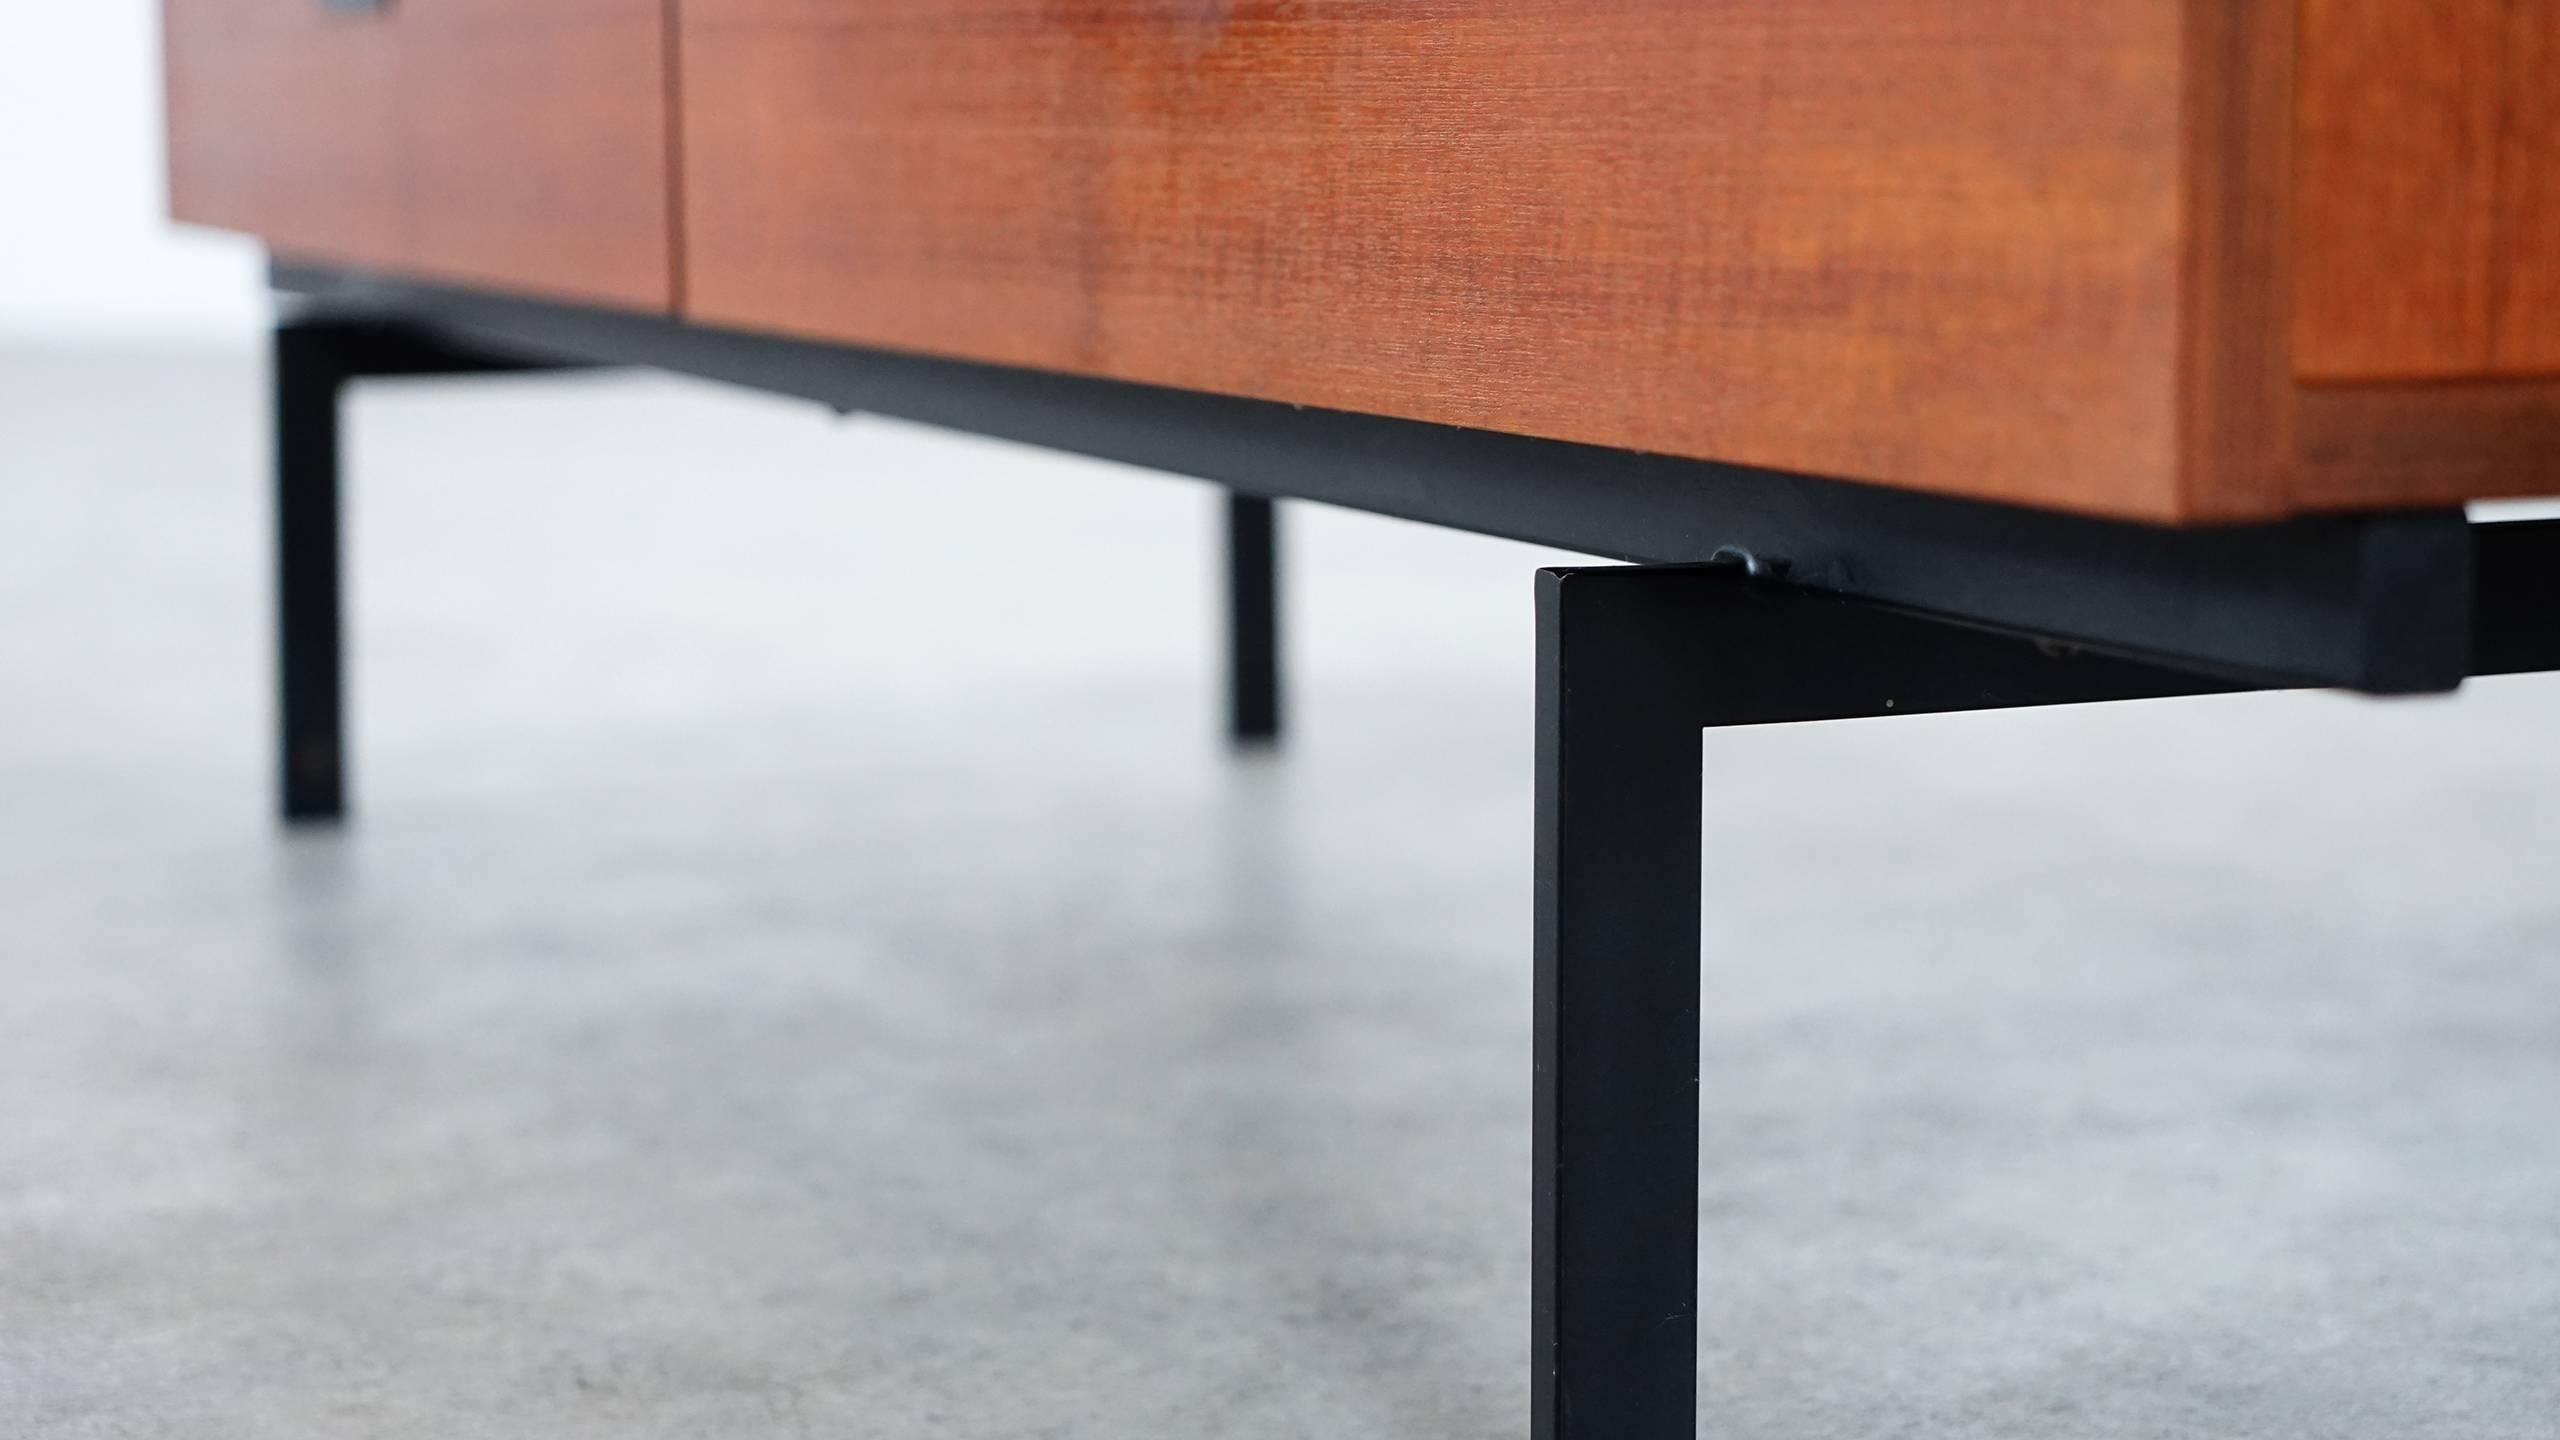 Minimalist Sideboard Designed By Cees Braakman For Pastoe The Netherlands  This Highly.